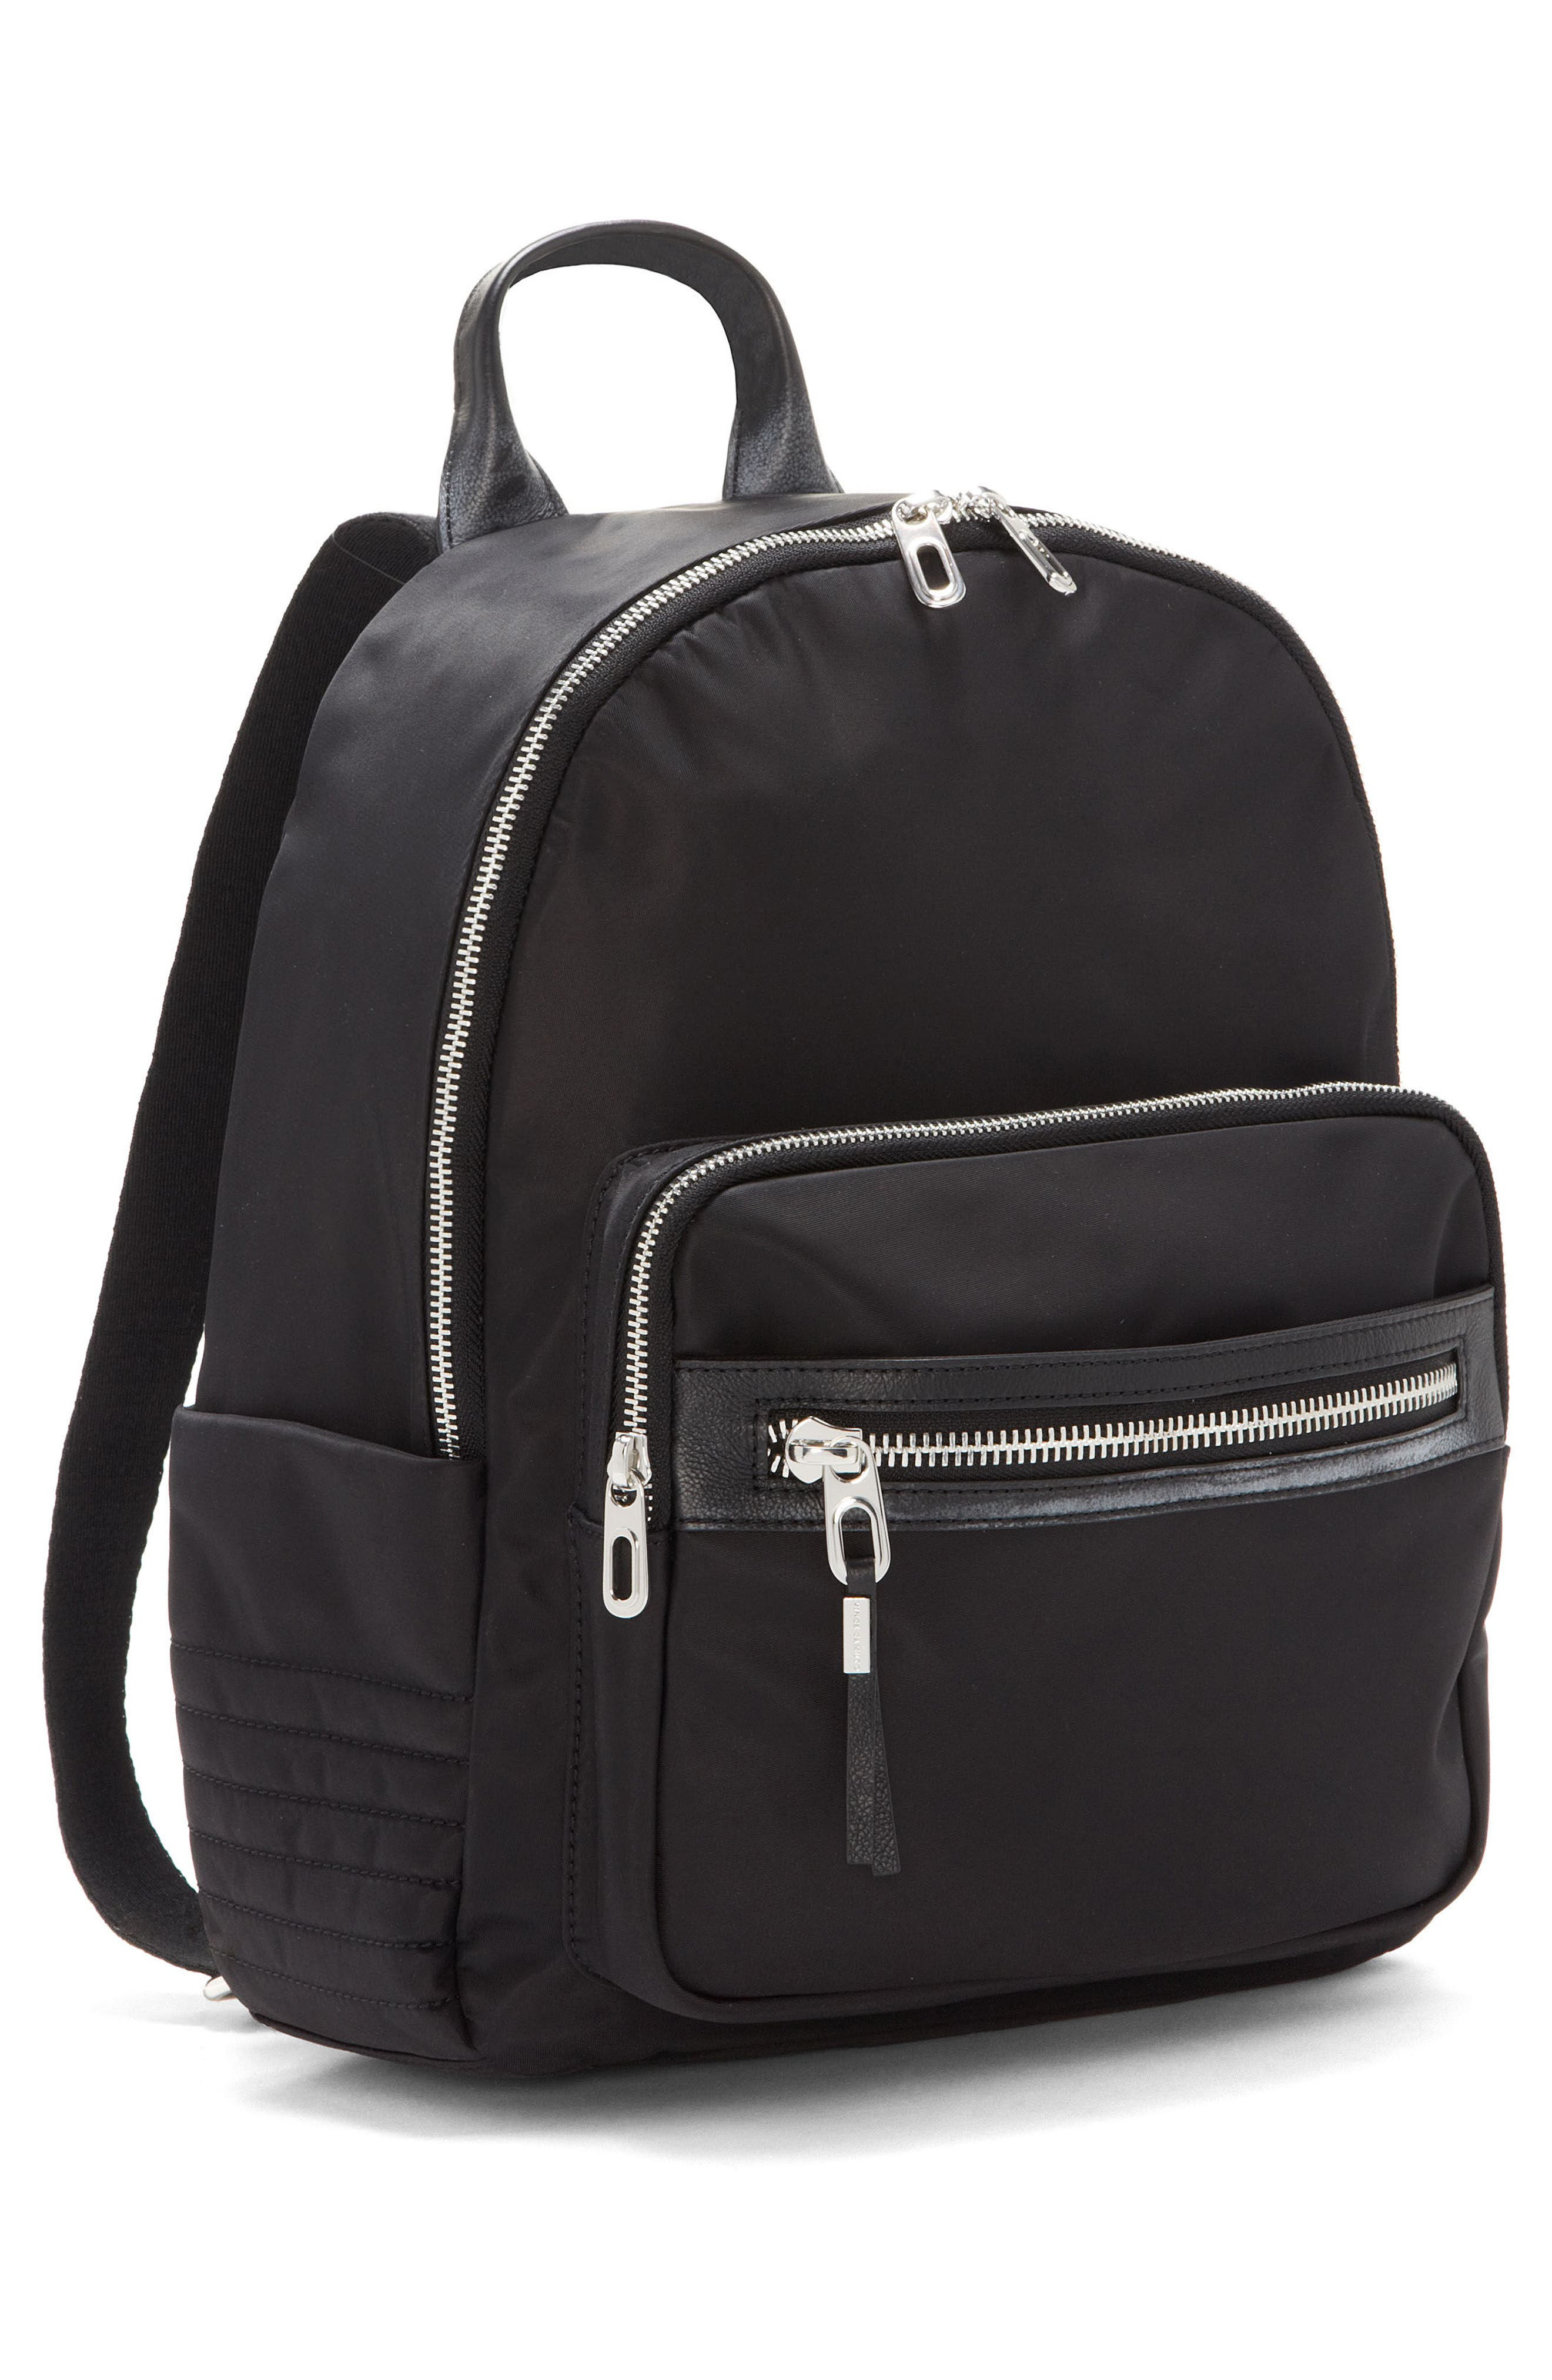 Action Nylon Backpack,                             Alternate thumbnail 4, color,                             001